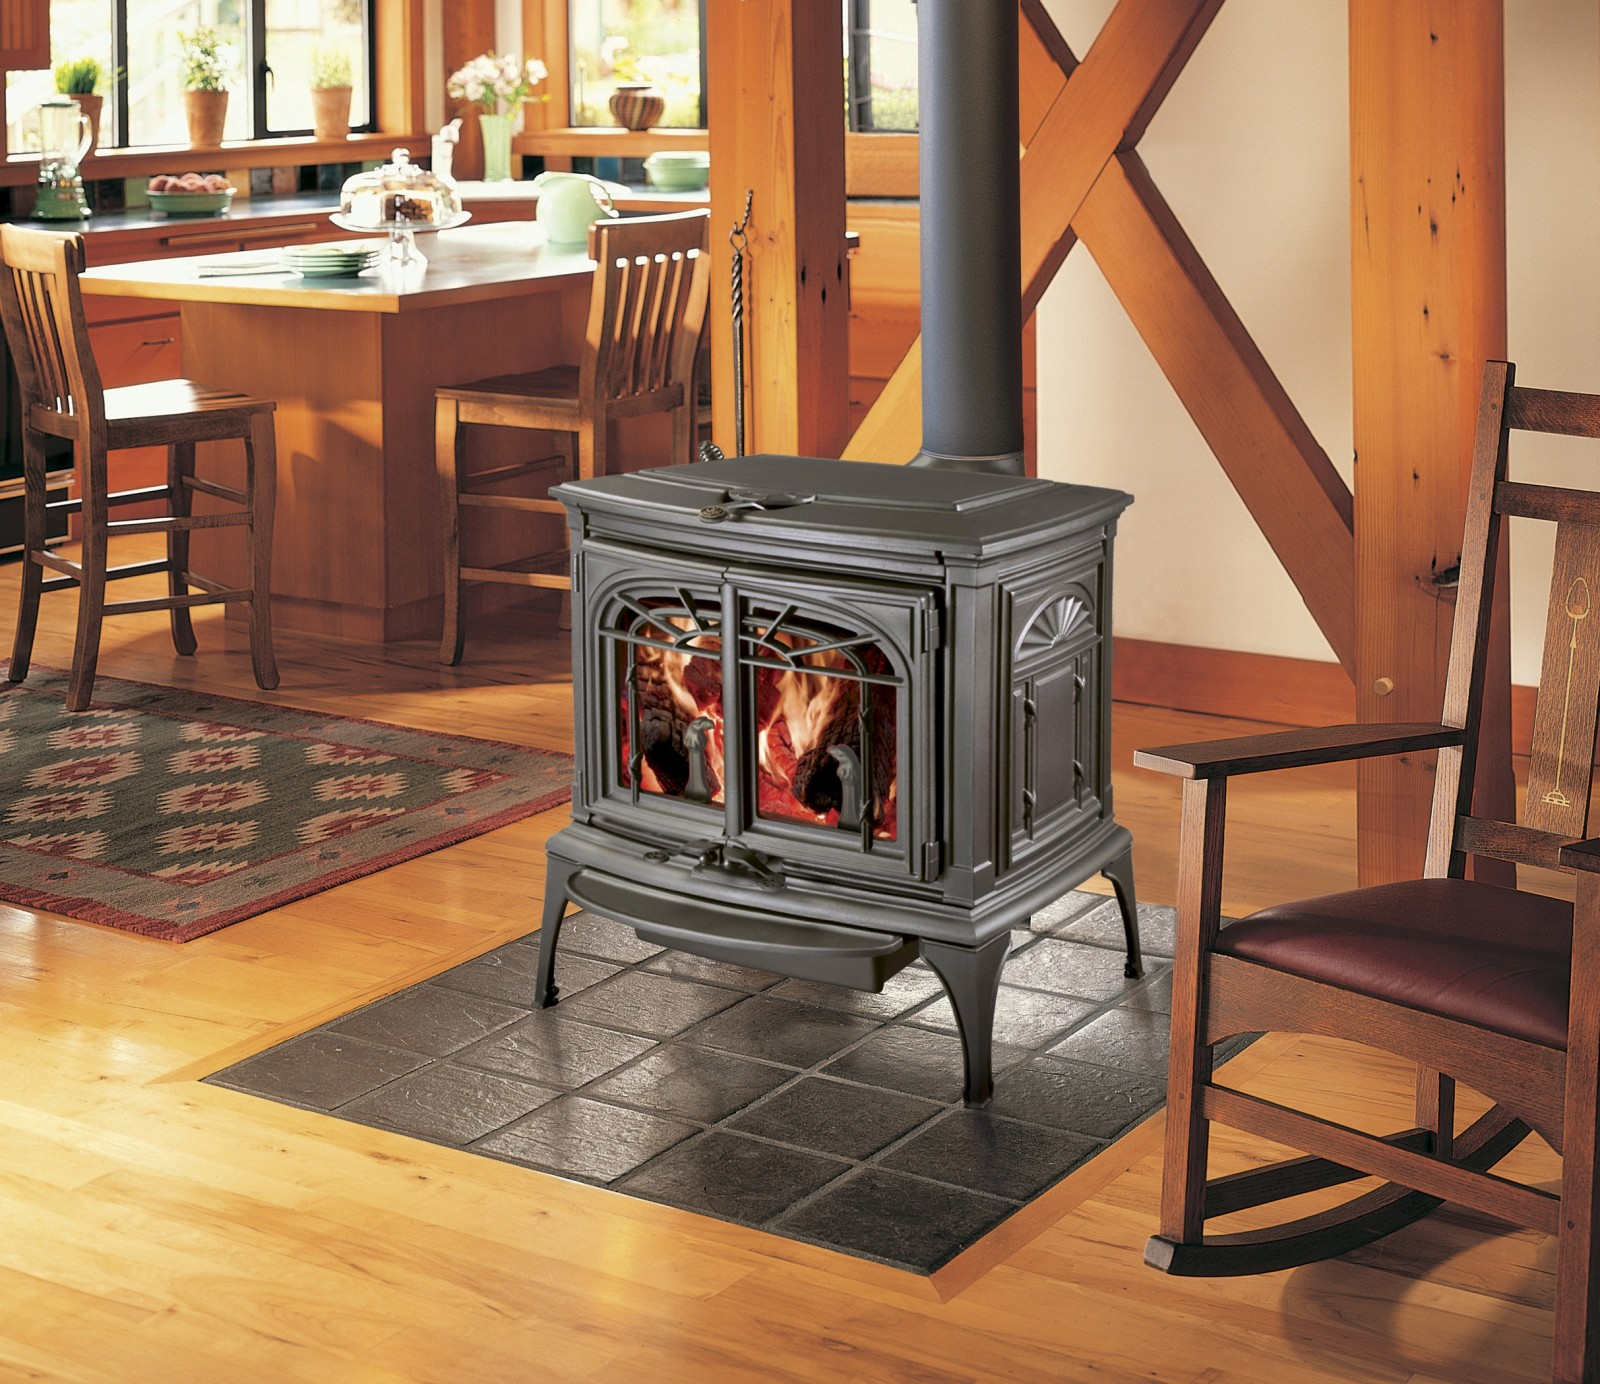 Choosing A Woodstove That Is Right For You